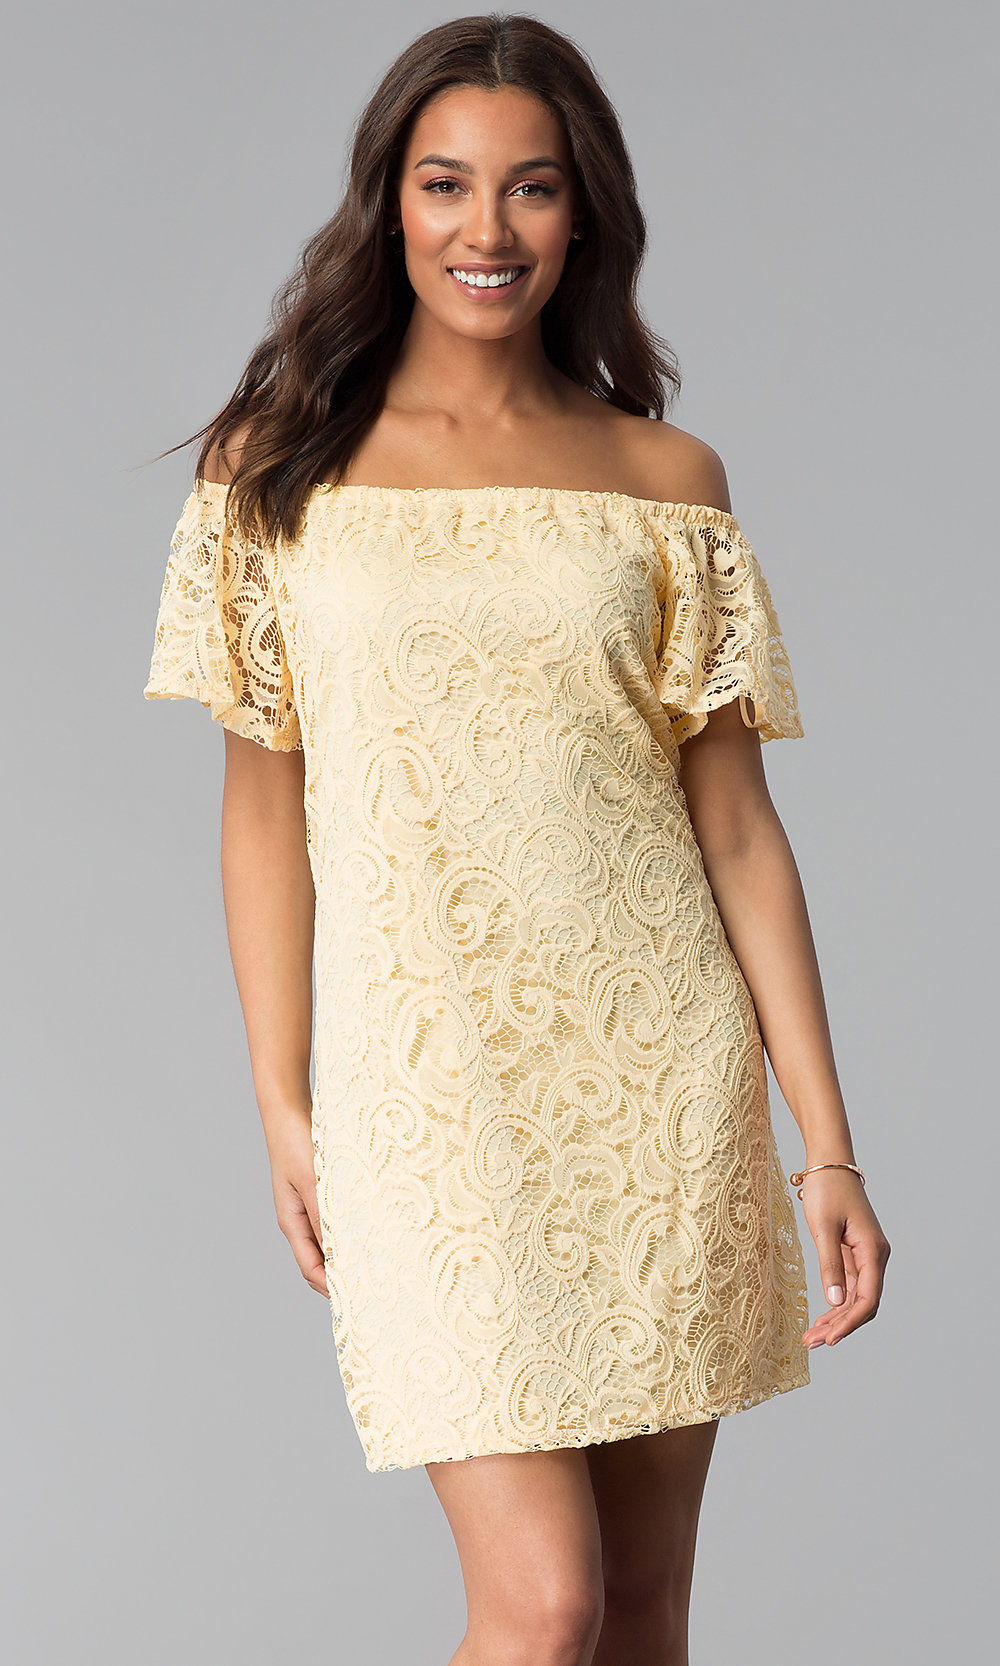 2c3a7684fb0d Image of yellow off-shoulder short lace casual party dress. Style  JU-. Tap  to expand